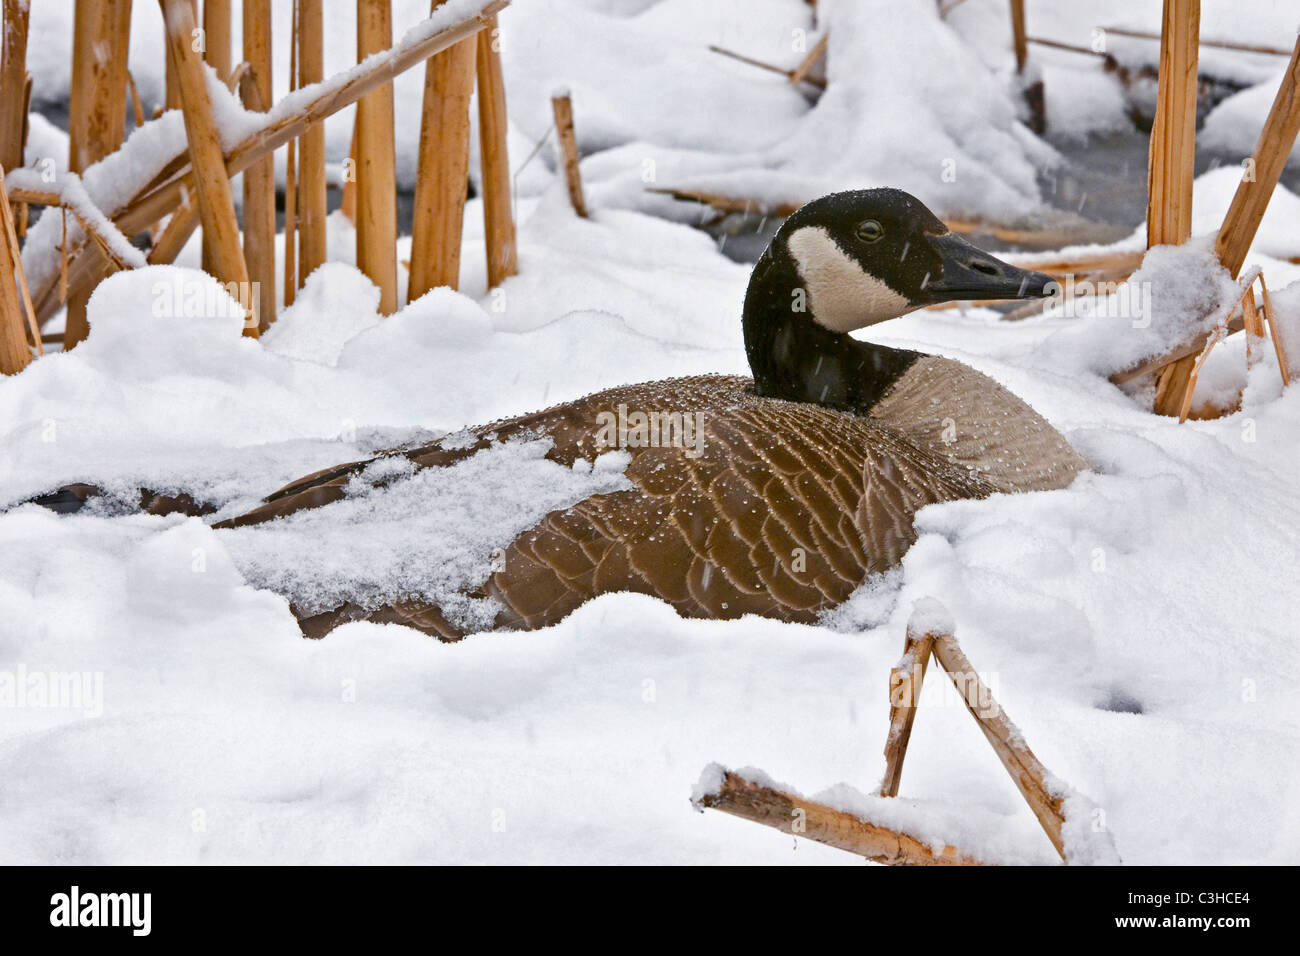 Canada Goose Branta canadensis on her nest in April snow storm Michigan USA - Stock Image